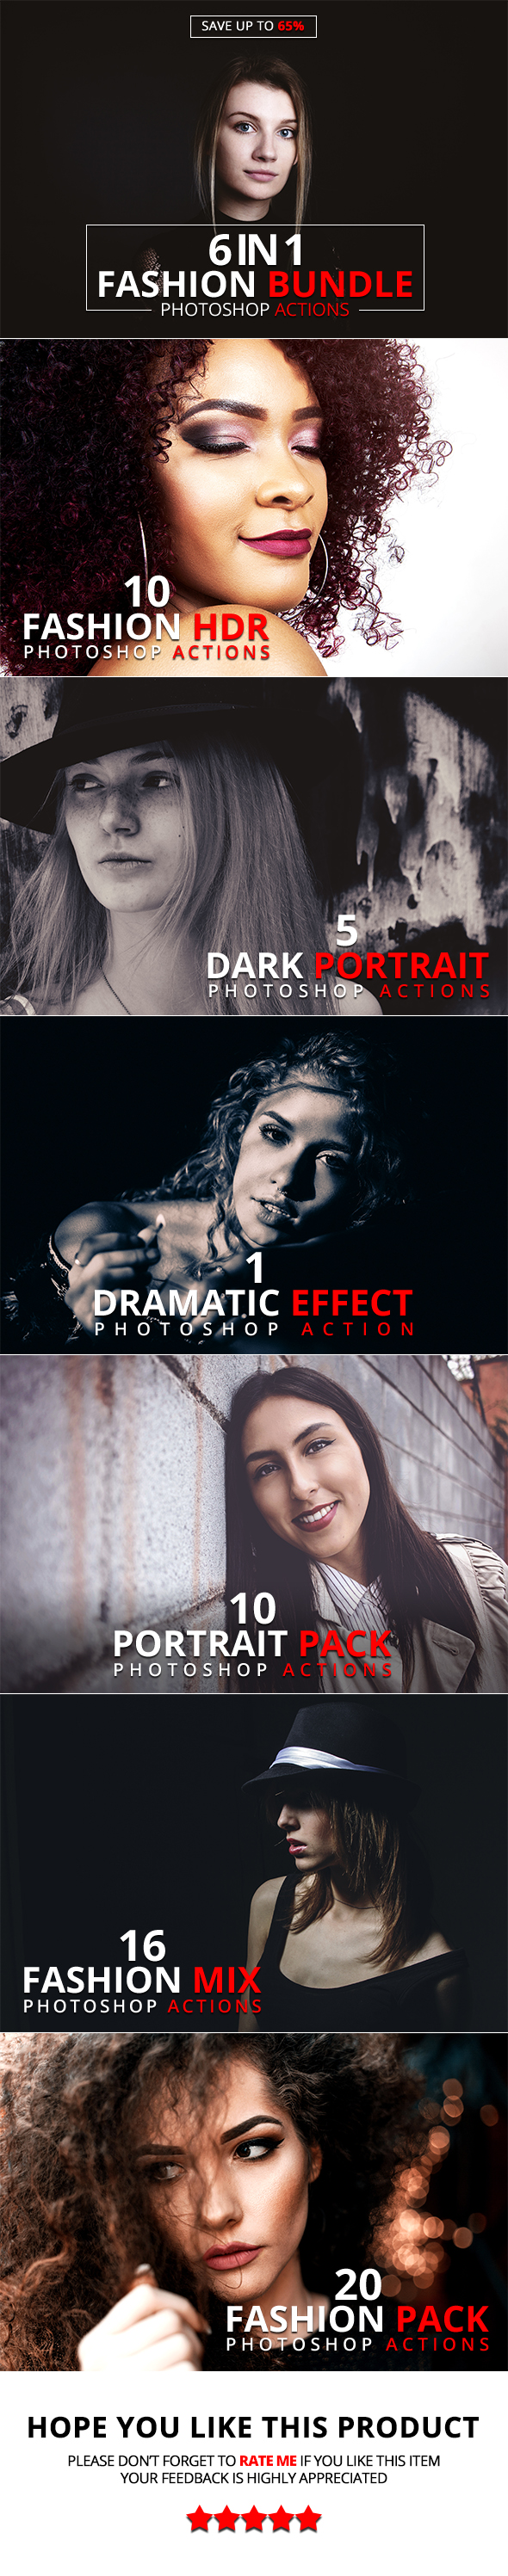 6 IN 1 Fashion Bundle Photoshop Actions - Actions Photoshop